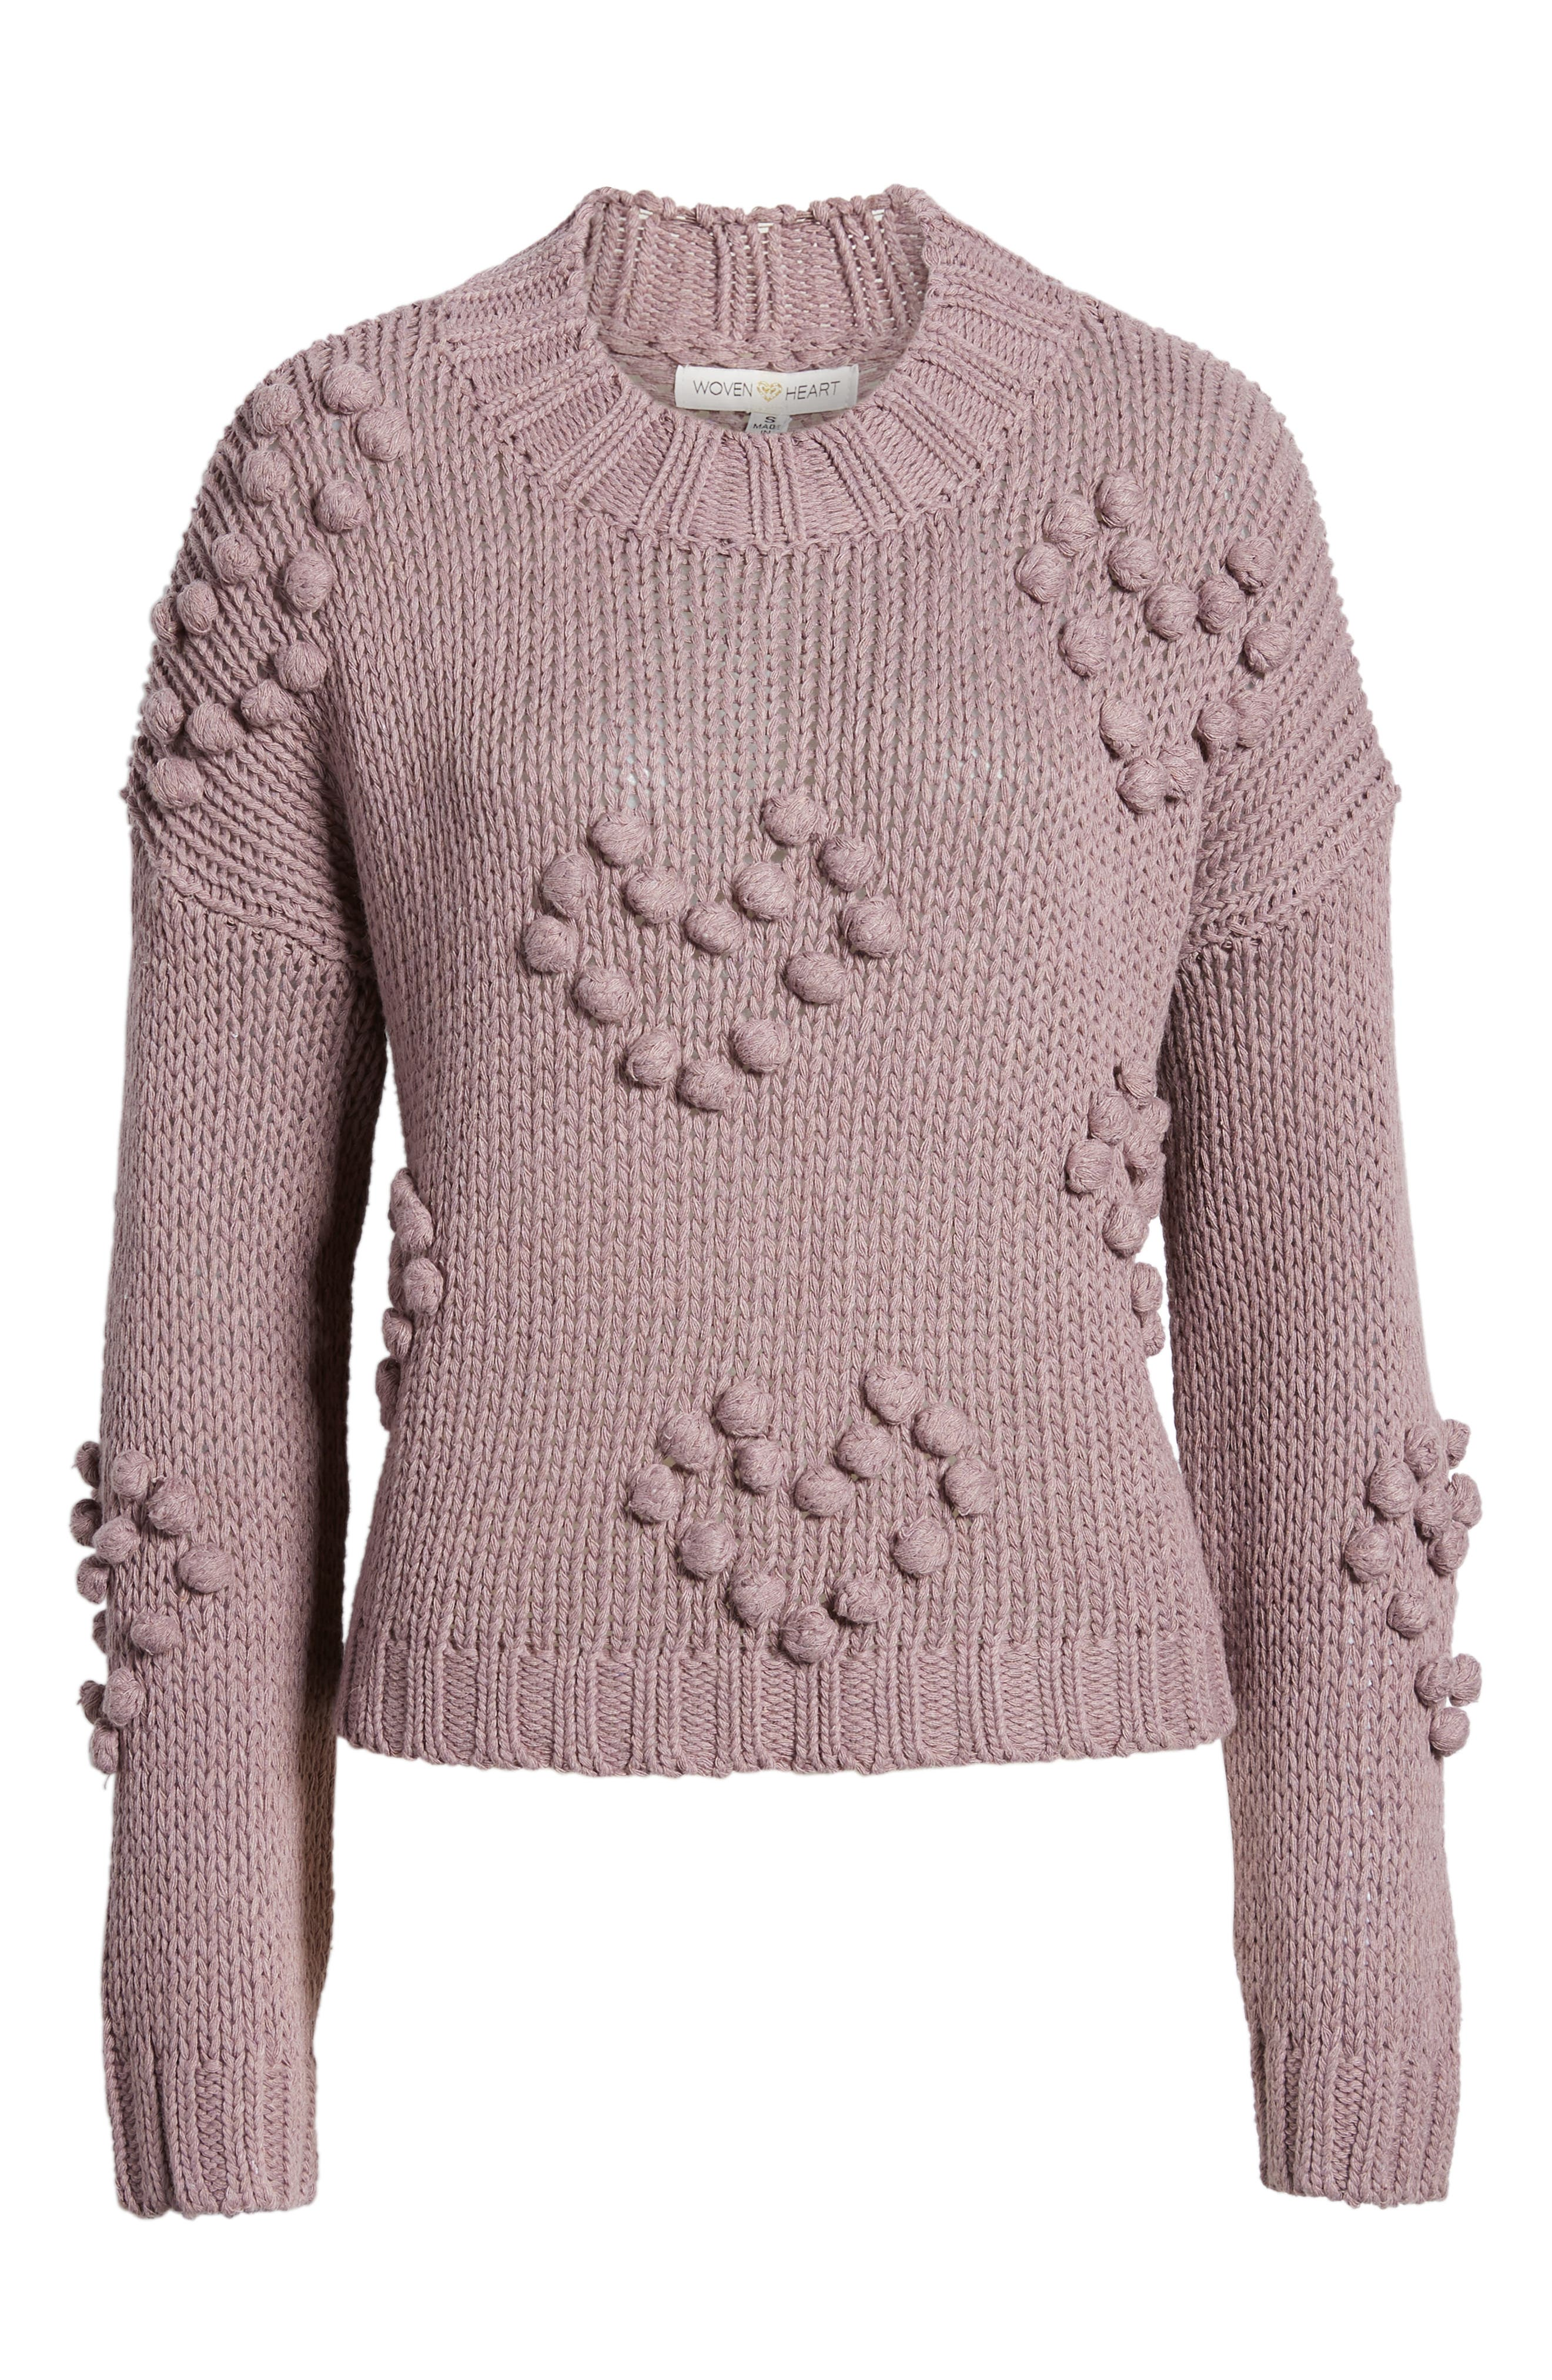 Placement Knot Knit Sweater,                             Alternate thumbnail 6, color,                             300